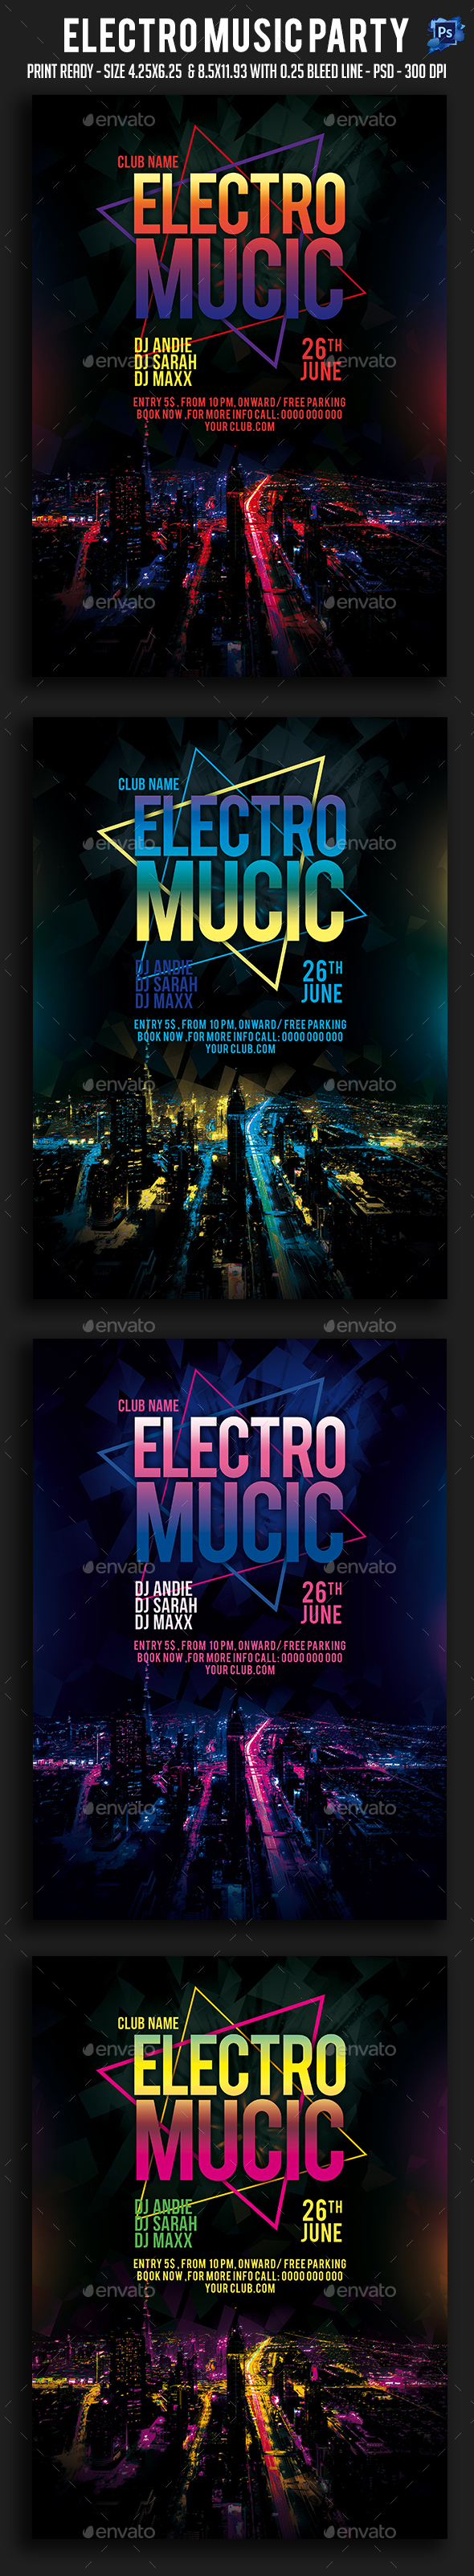 Electro Music Party Flyer - Clubs & Parties Events